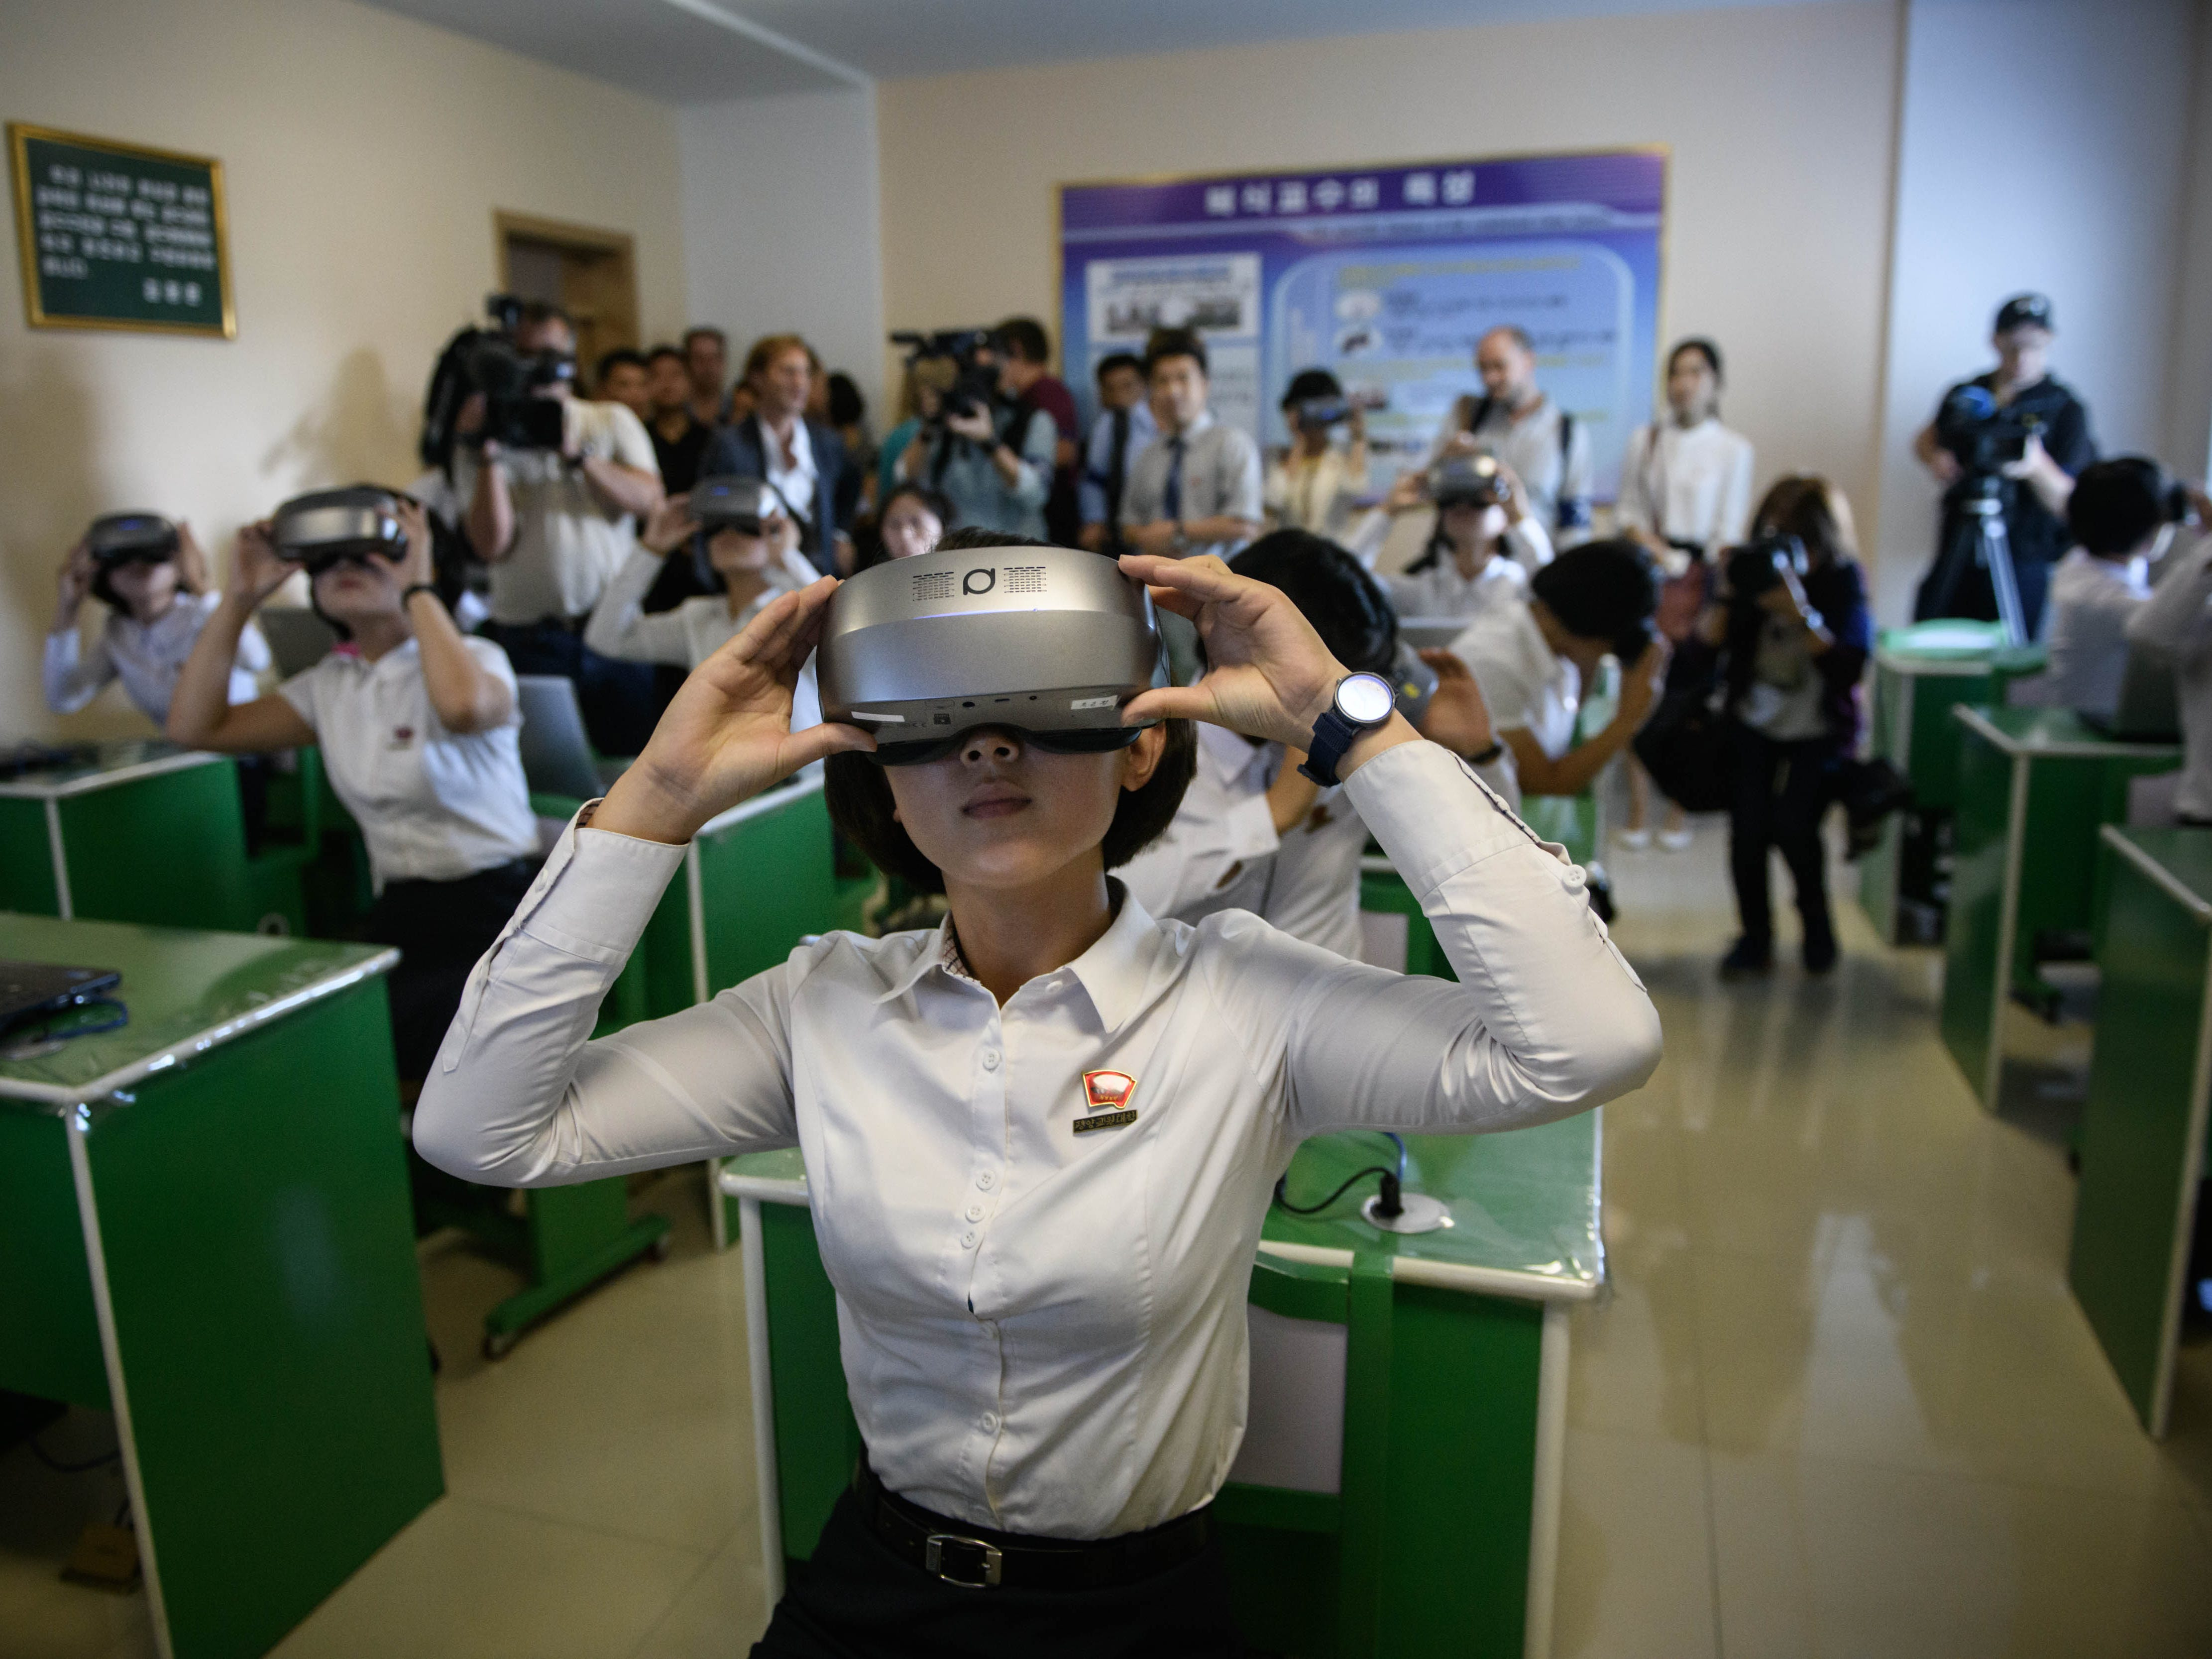 Students look through virtual-reality goggles during a tour for visiting foreign media to a teacher training college in Pyongyang on Sept. 7, 2018. North Korea is preparing to mark the 70th anniversary of its founding on Sept. 9.